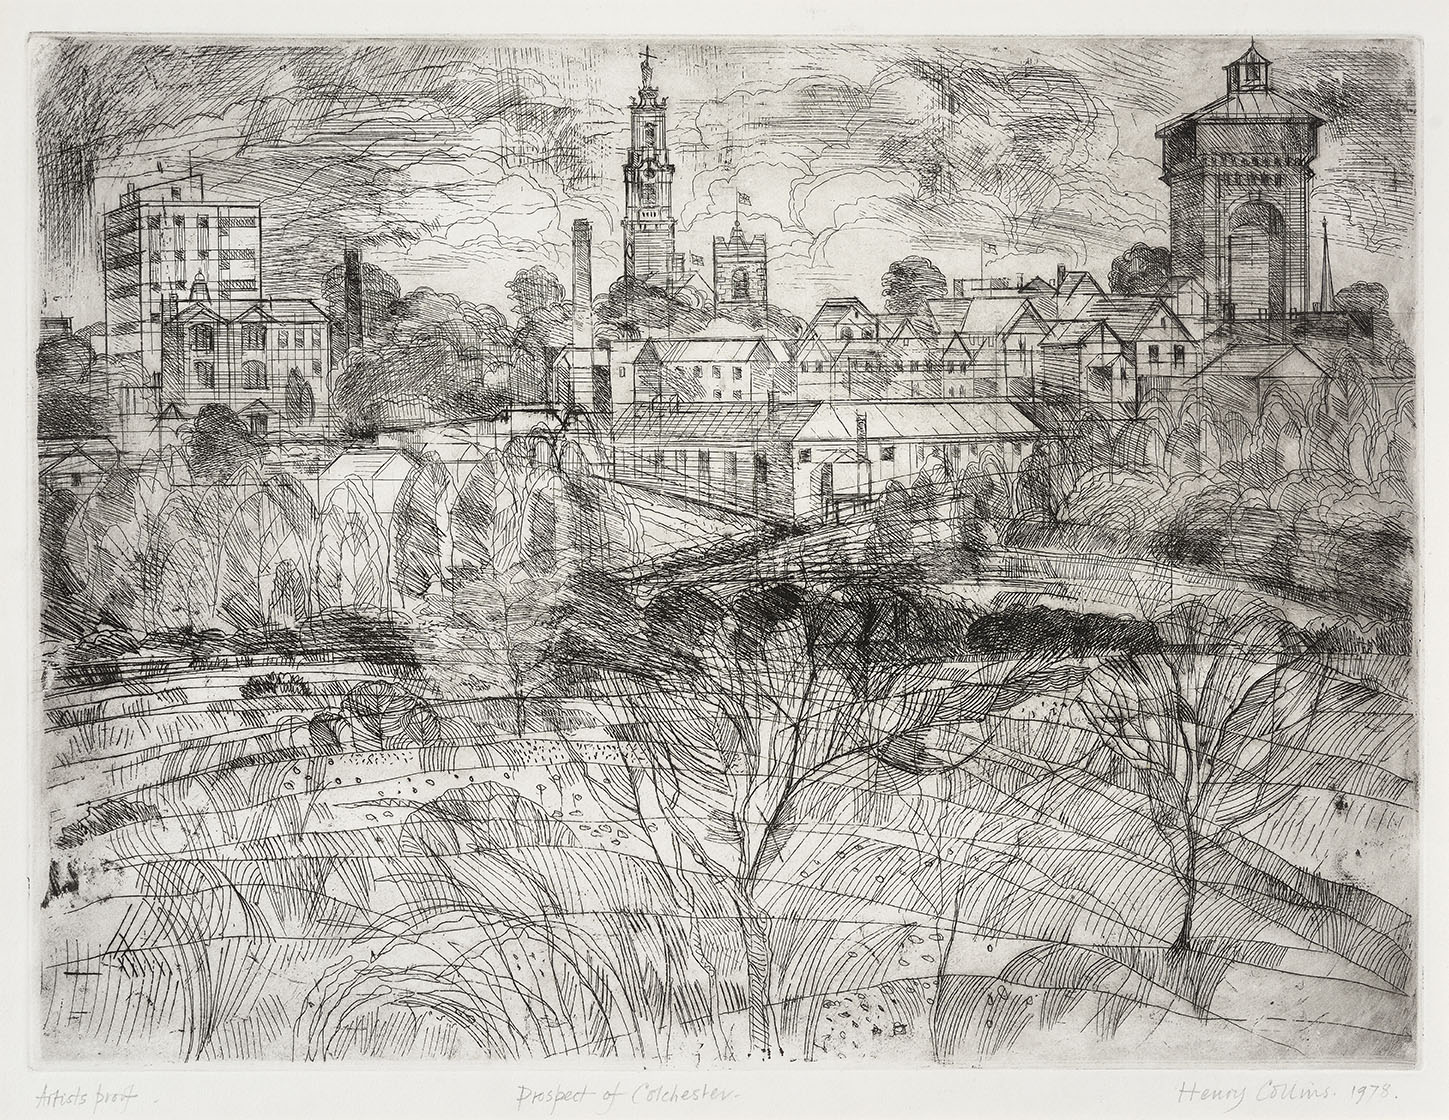 Henry Collins (1910-1994)    Prospect of Colchester,  1978, Etching on paper, 14 ½ x 19 ½ in, Artist Proof, Signed and dated  [CAS 64] Gifted by Ian Hay in 2012